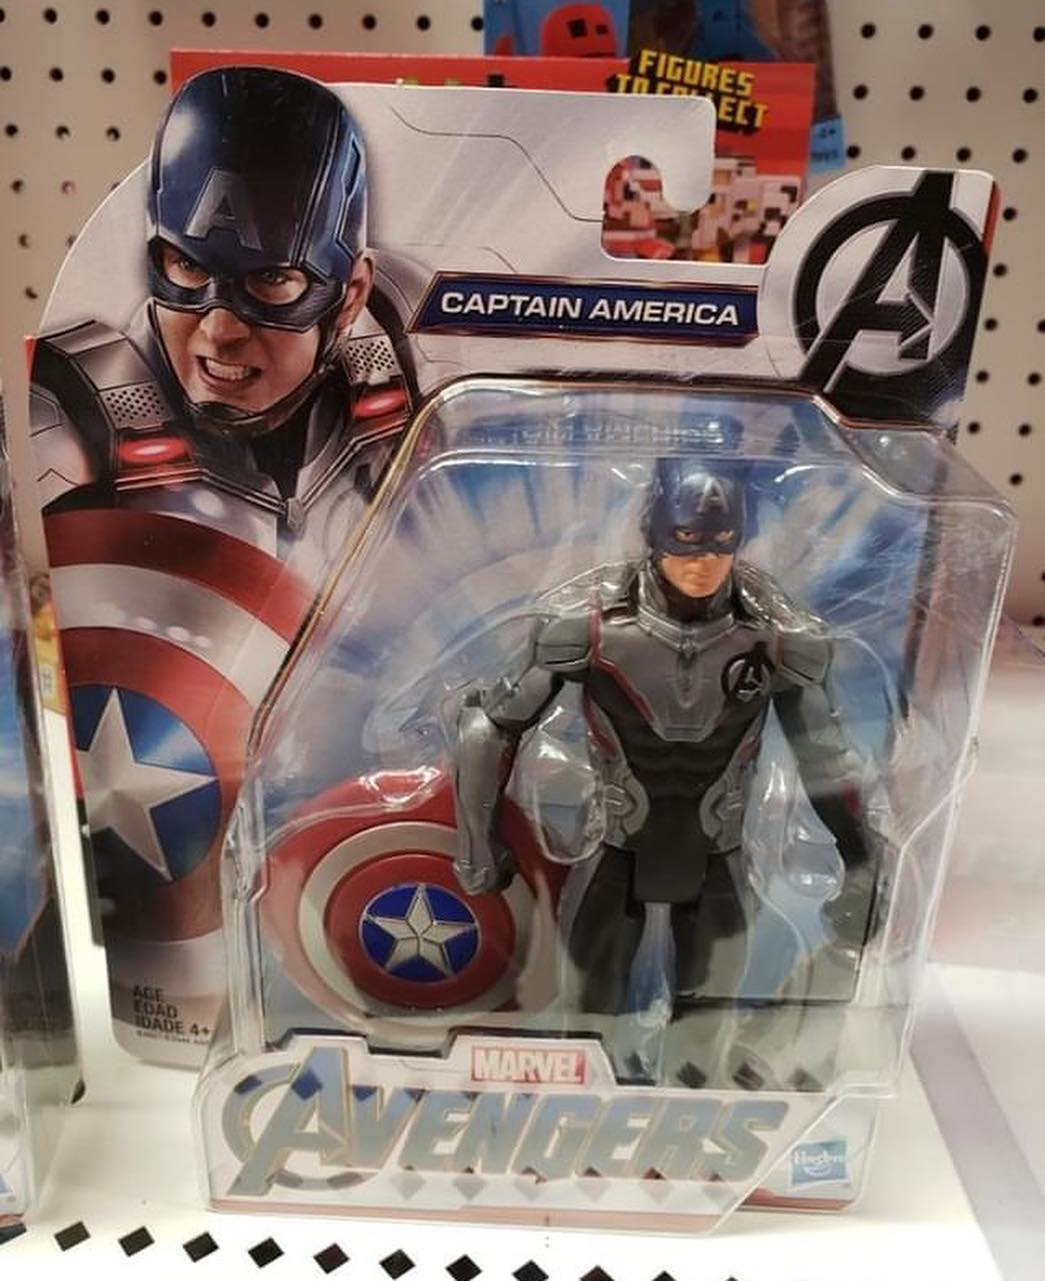 OFFICIAL Marvel Avengers Deluxe COLLECTIBLE Figurine Set Avengers ENDGAME PACK